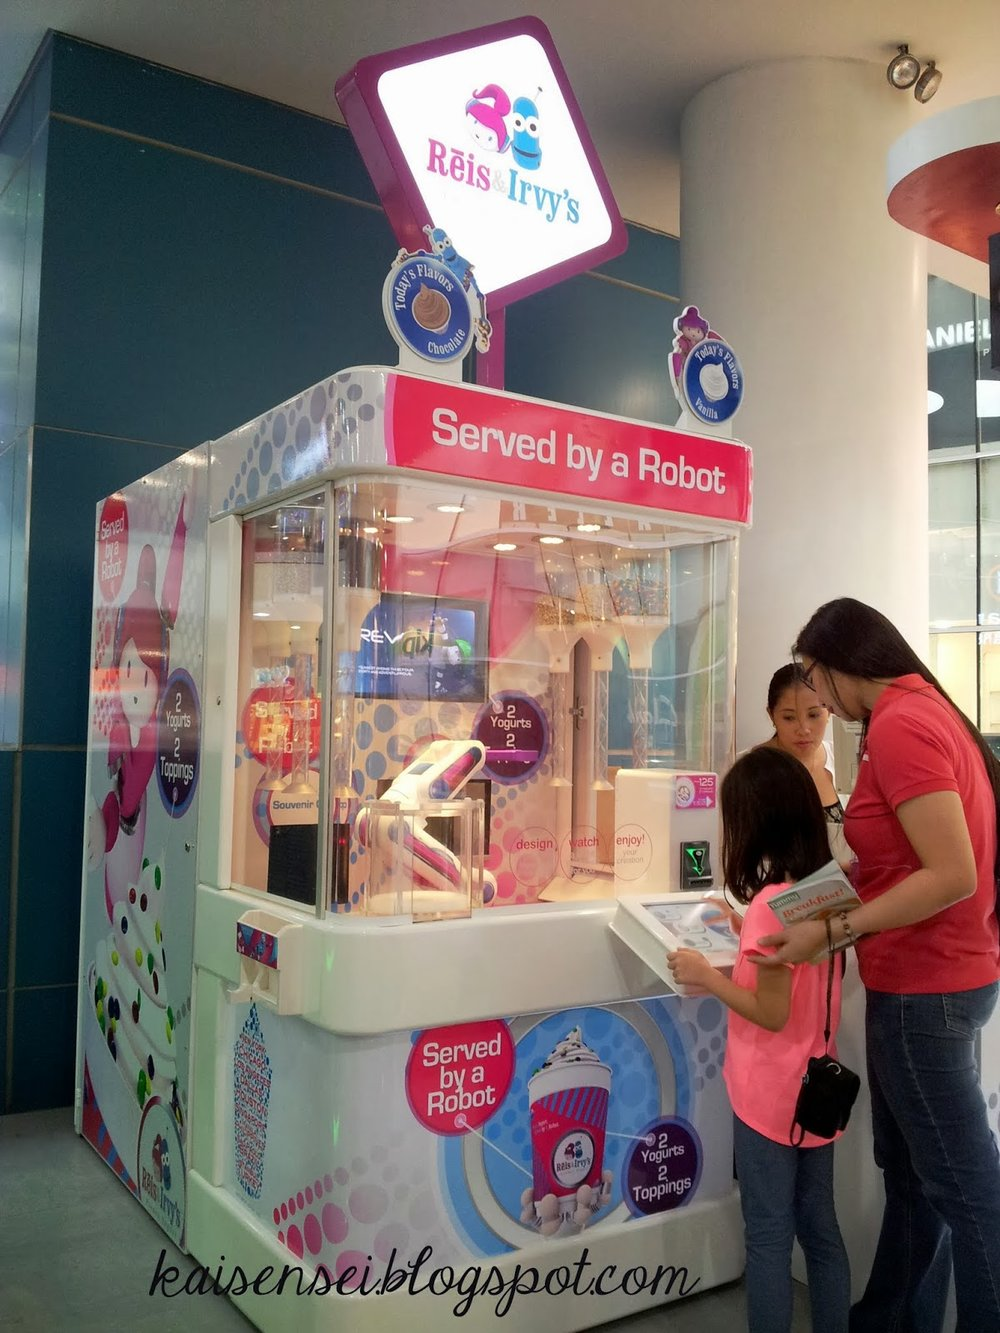 World's First Robotic Frozen Yogurt Kiosk located in the Philippines. Photo:  Kaisen Sei